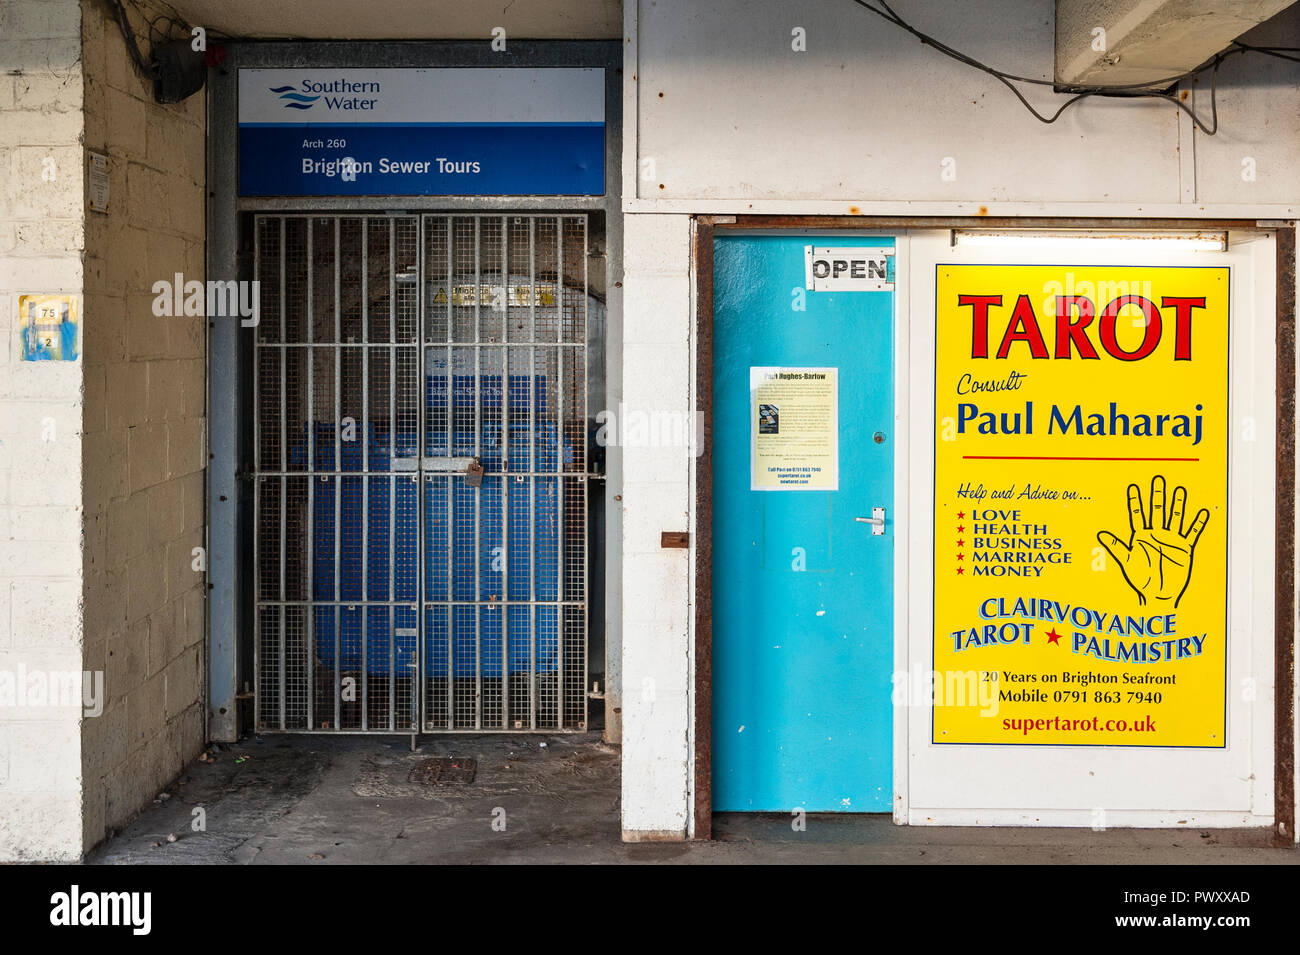 Brighton, East Sussex, UK. The entrance for tours of the town sewers, next to a poster advertising tarot readings and clairvoyancy - Stock Image